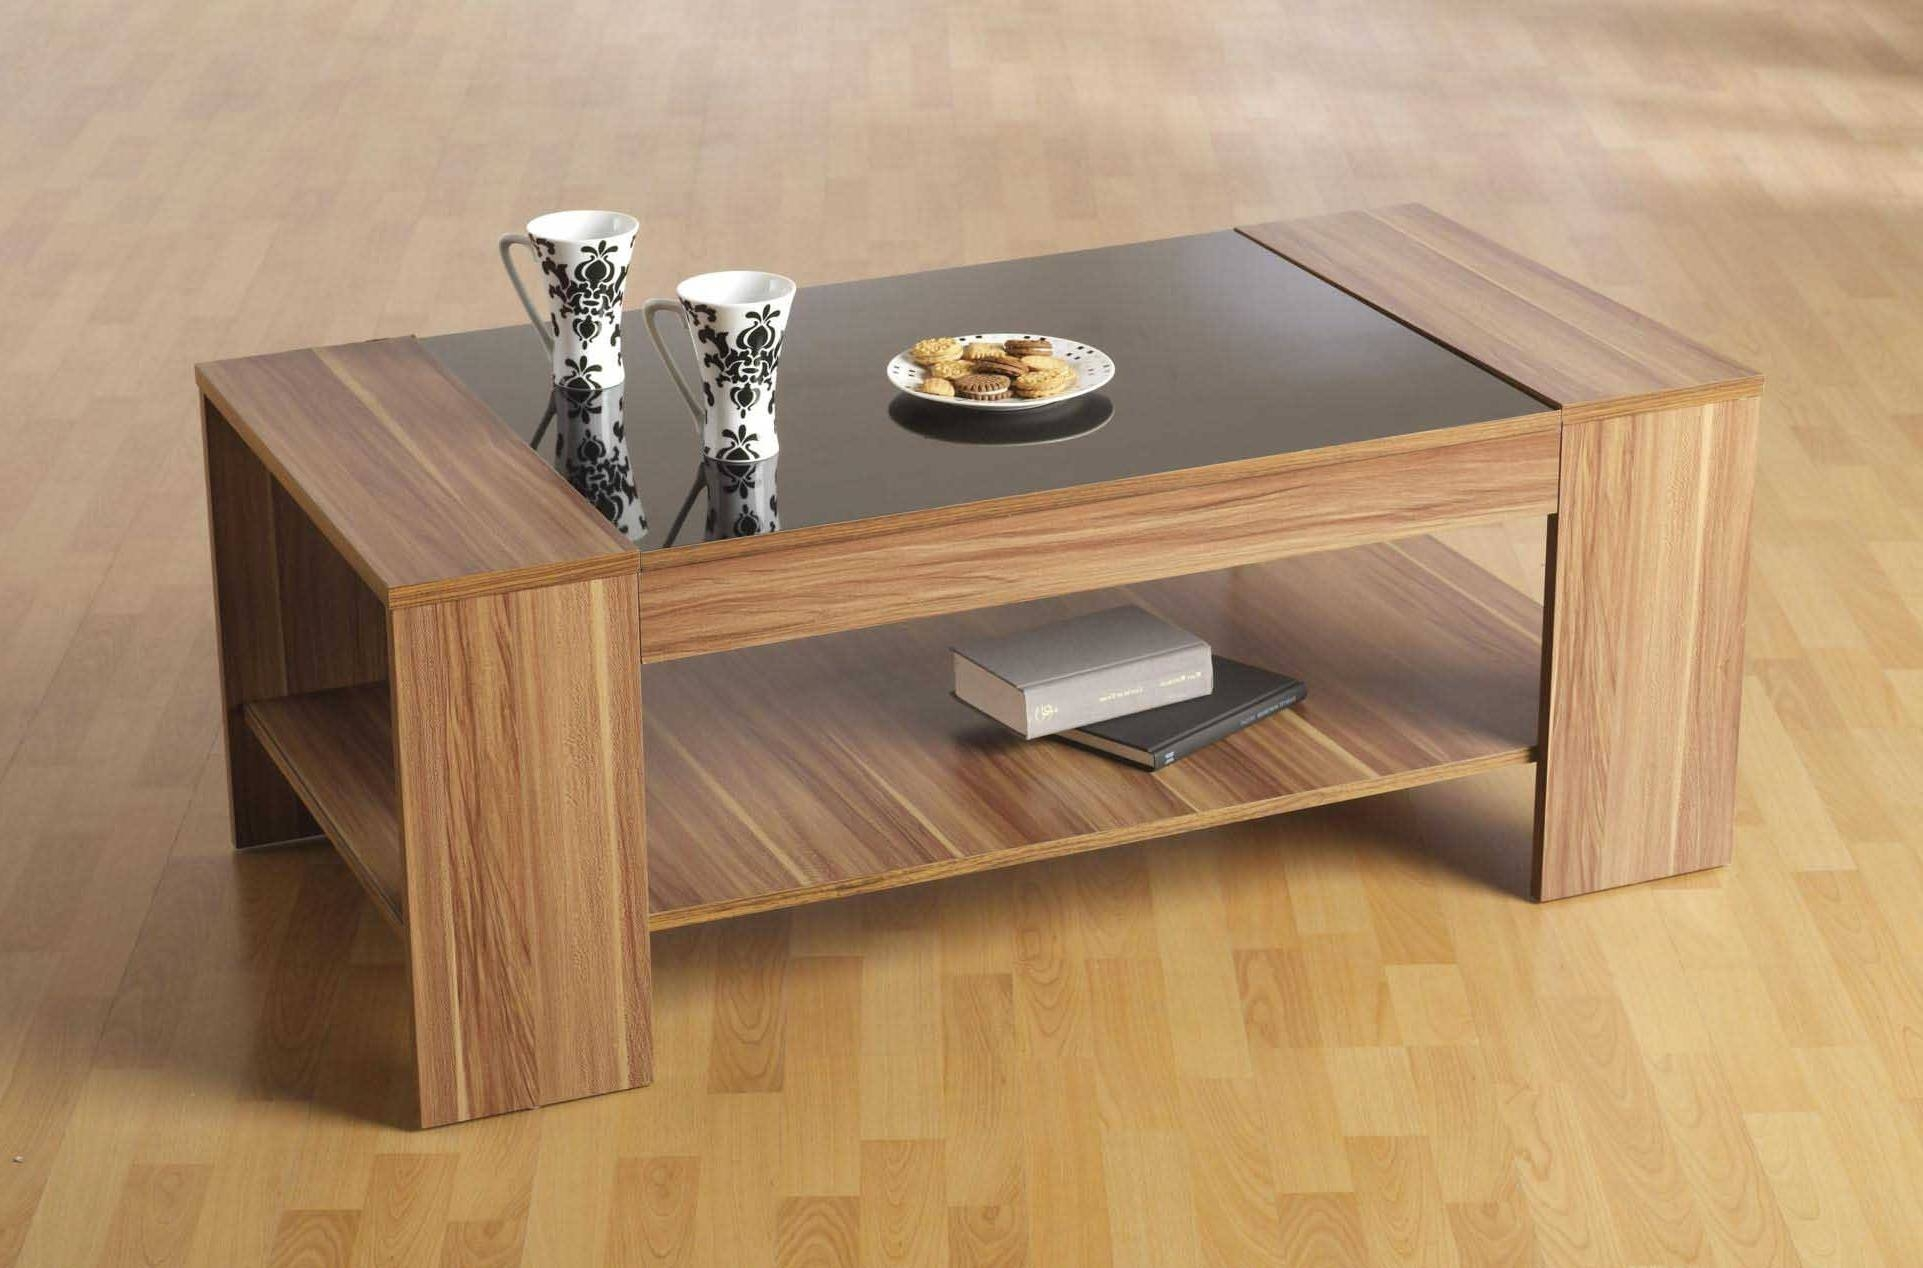 Extraordinary Wooden Coffee Table Designs With Glass Top – Wooden With Regard To Glass Top Storage Coffee Tables (View 22 of 30)